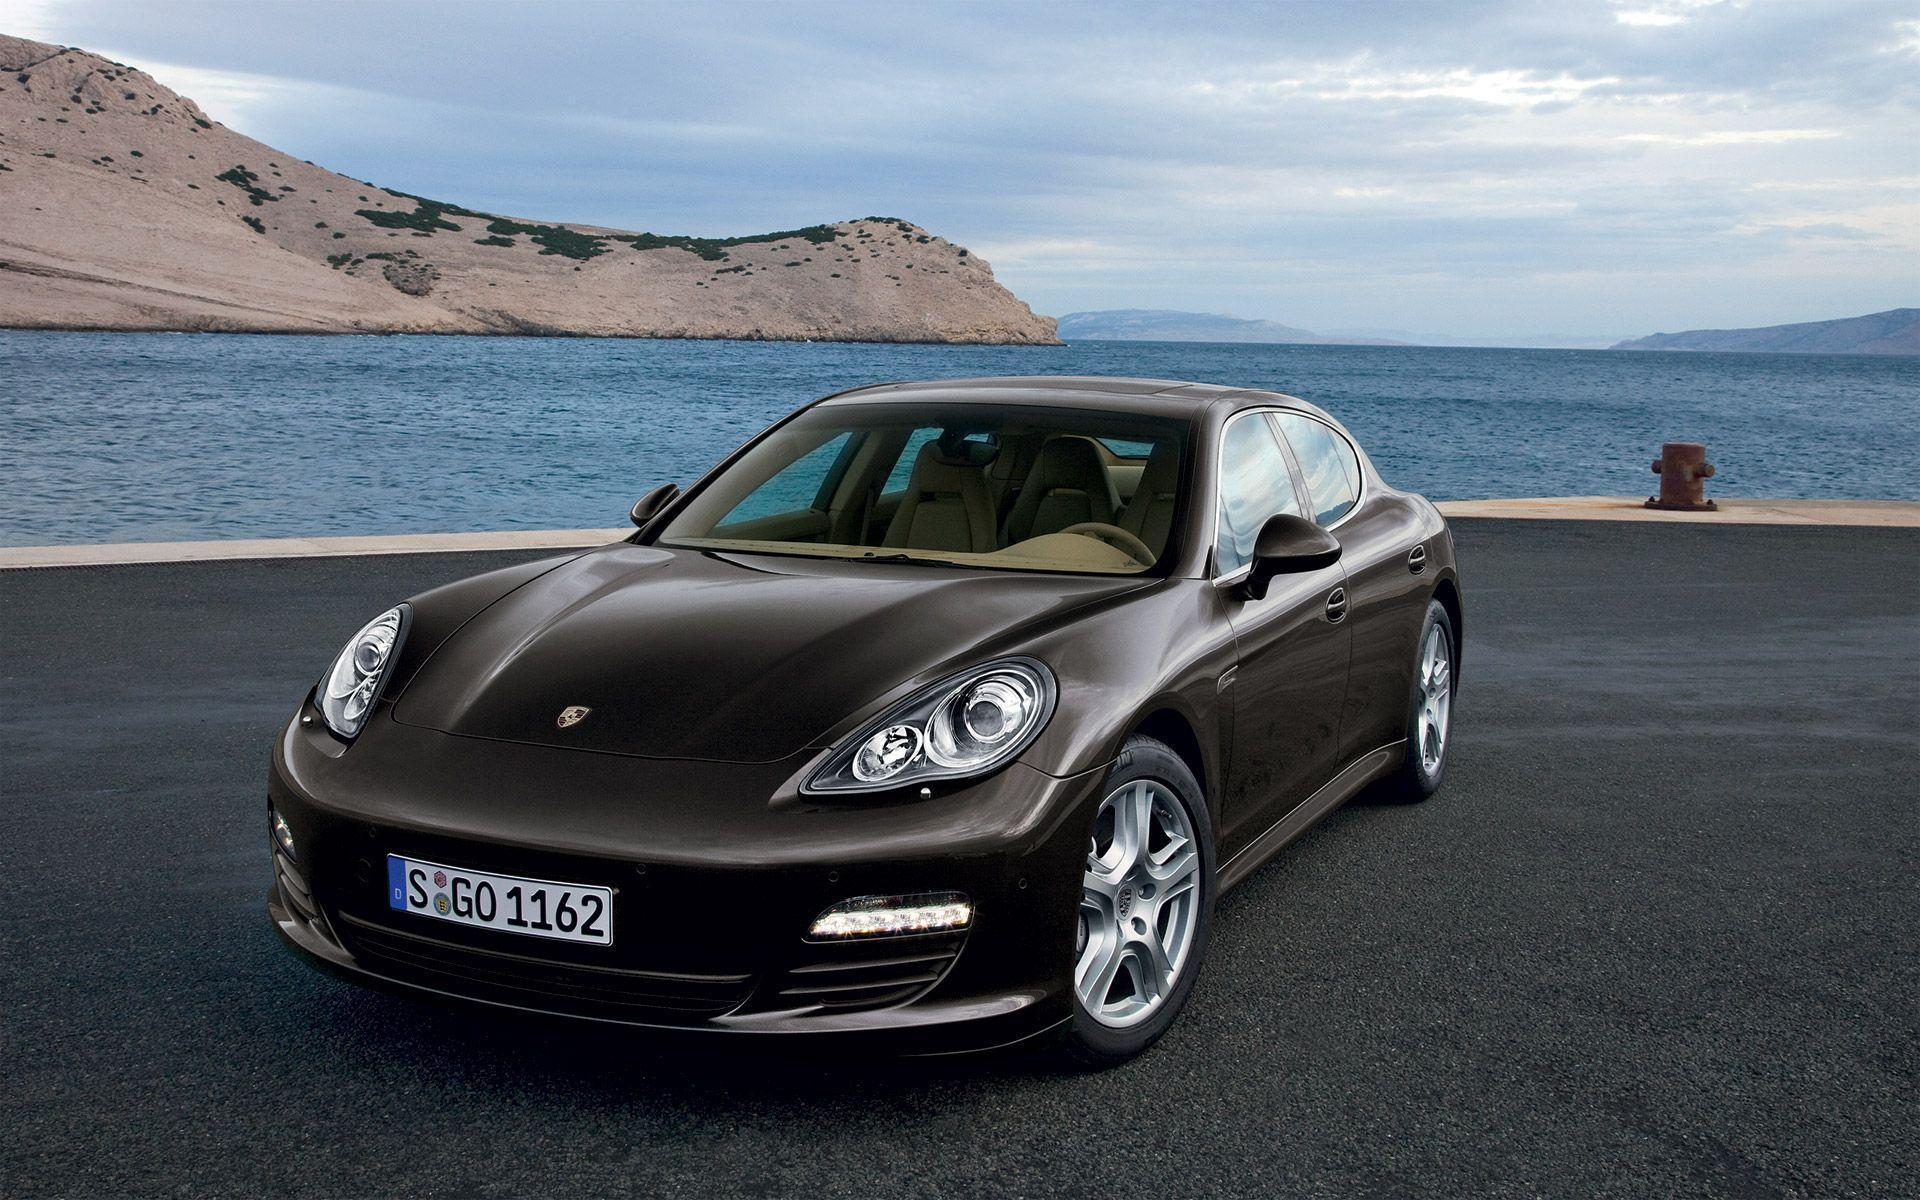 Most Downloaded Porsche Panamera Wallpapers - Full HD wallpaper search